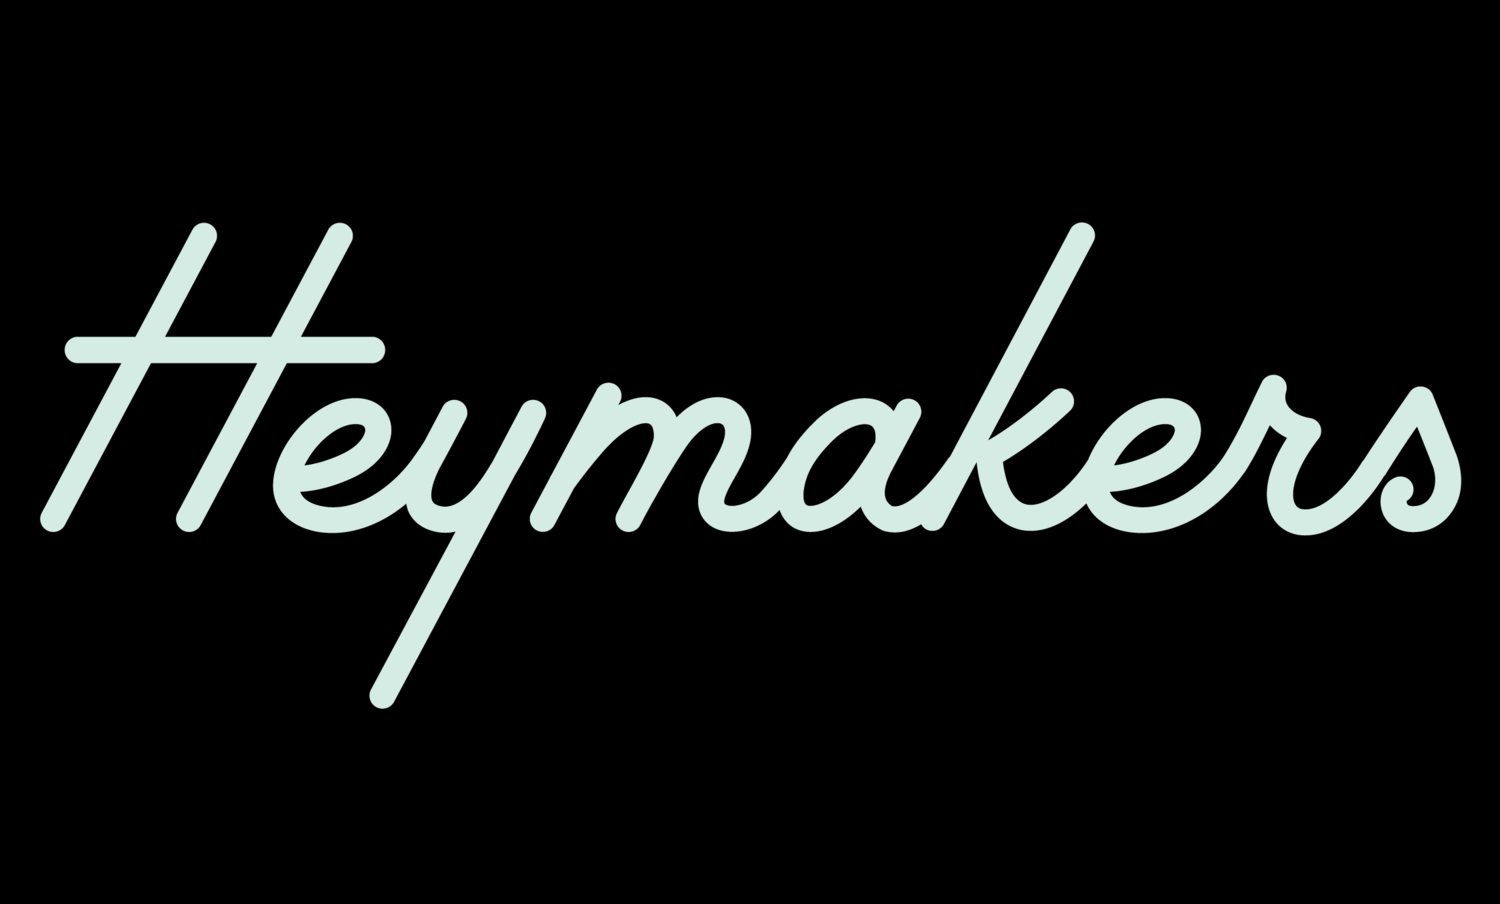 Heymakers